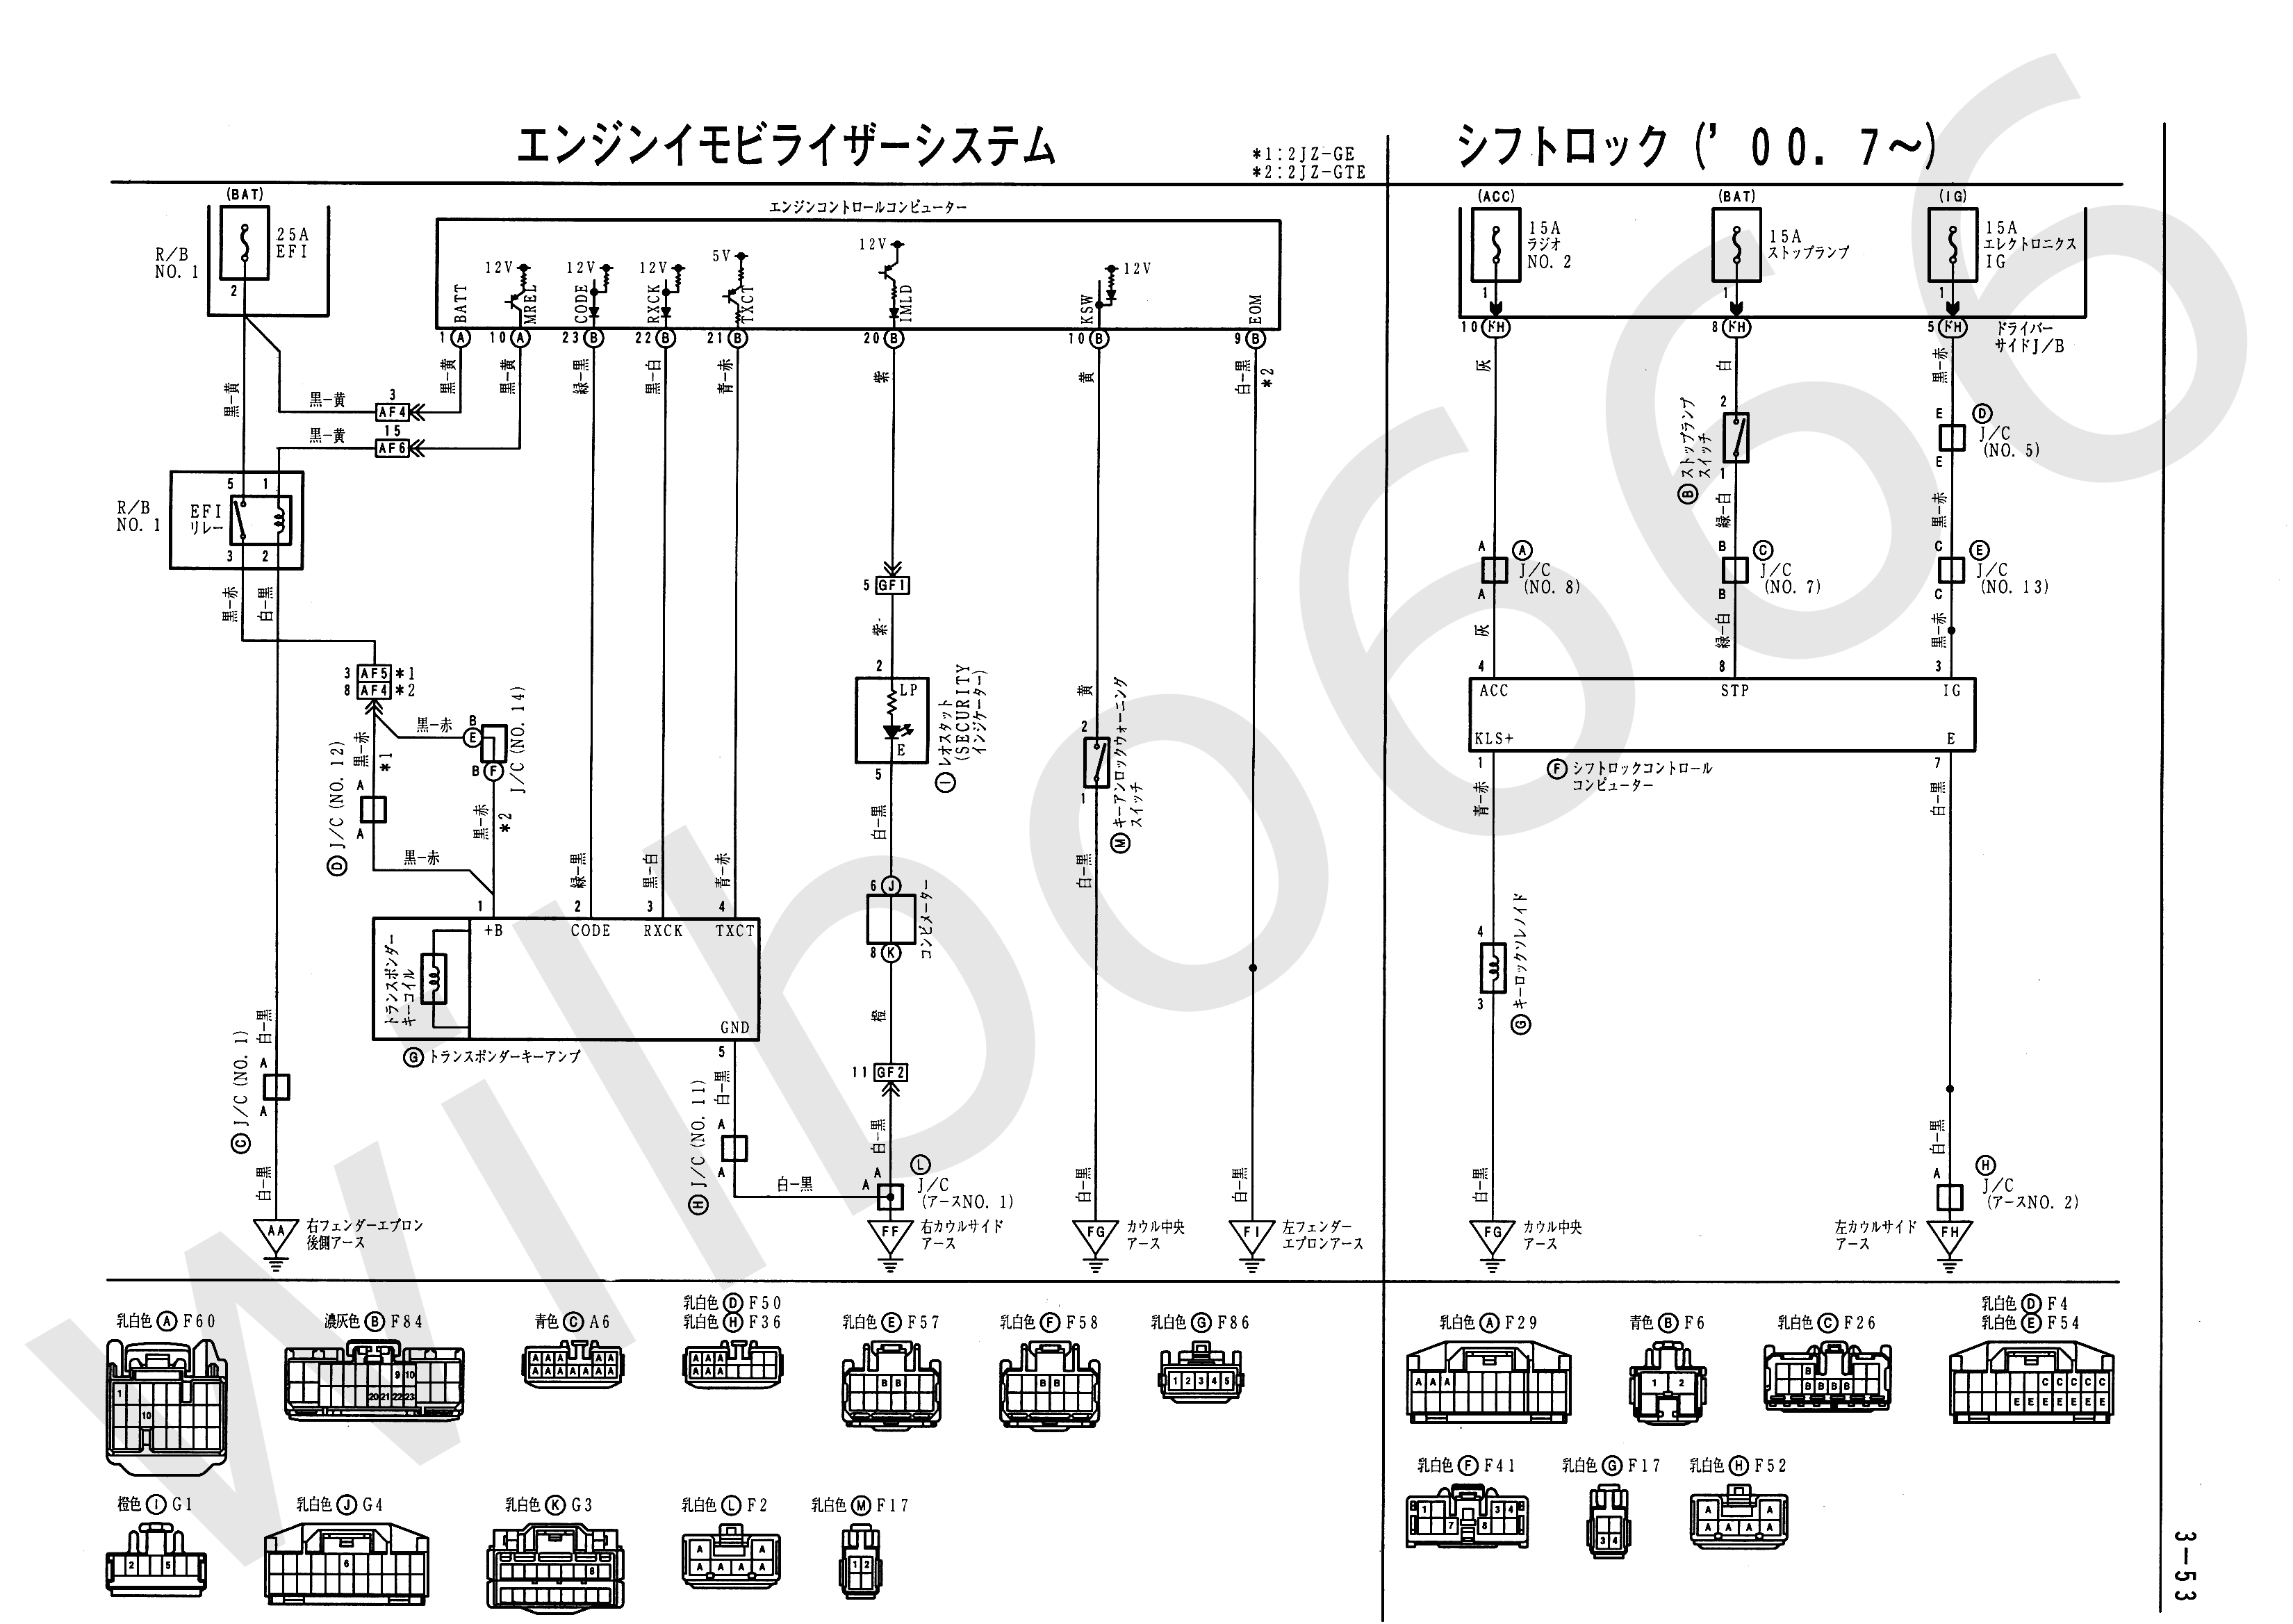 JZS161 Electrical Wiring Diagram 6748505 3 53 wilbo666 2jz gte vvti jzs161 aristo engine wiring 2jzgte wiring diagram at mifinder.co